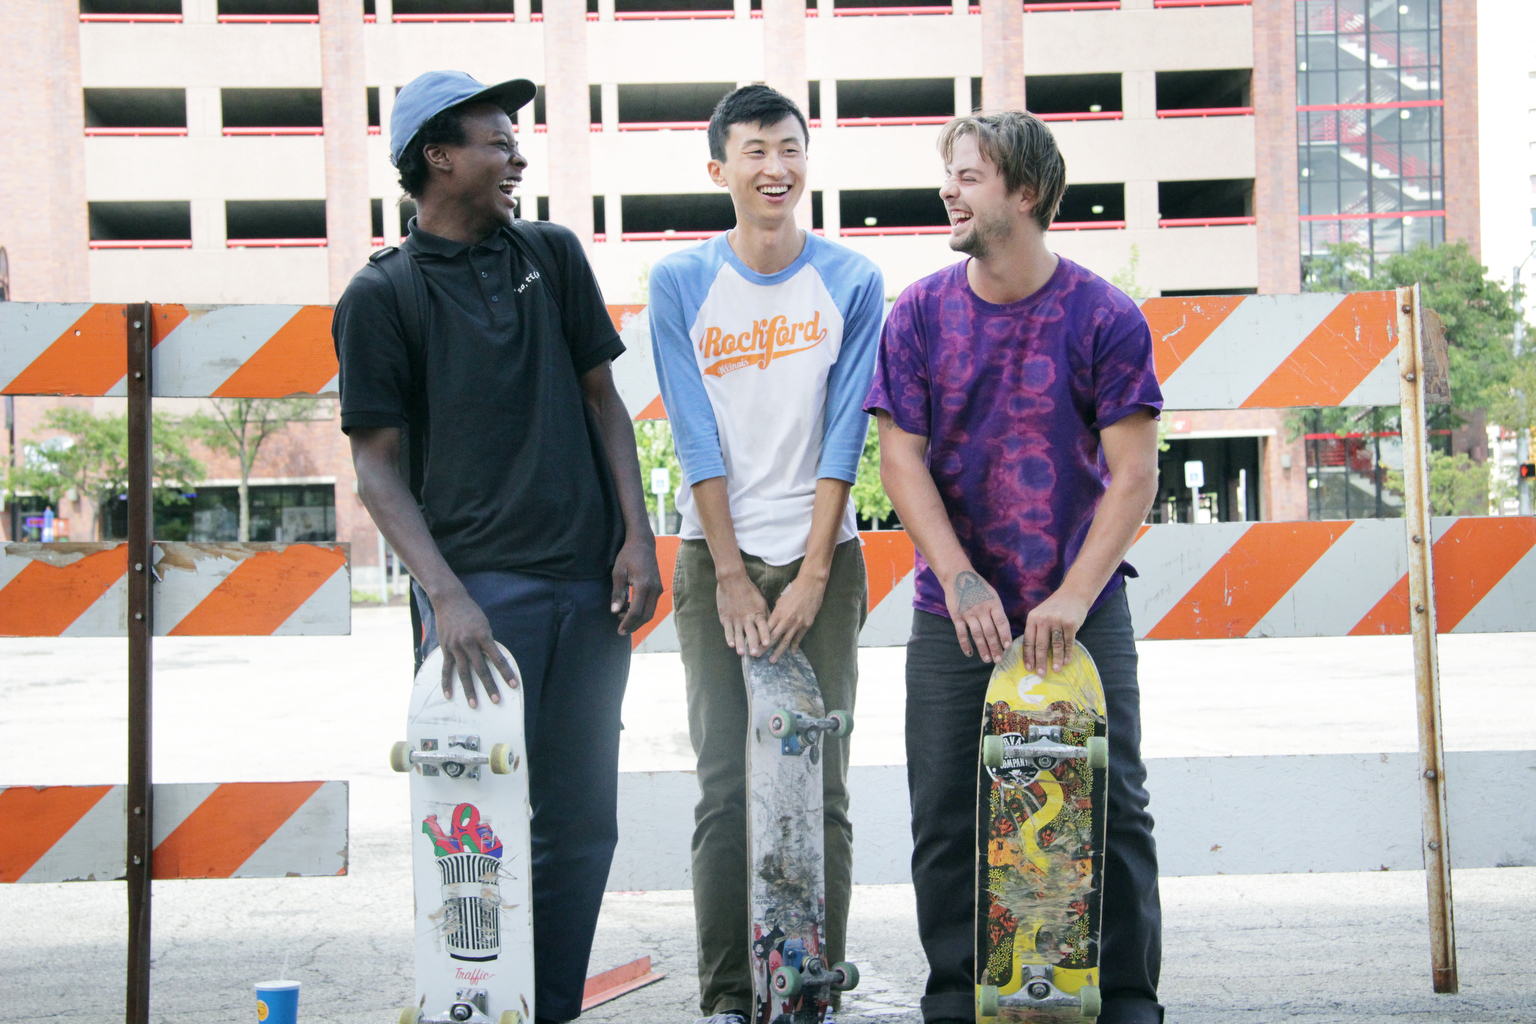 Minding The Gap- Compiling over 12 years of footage shot in his hometown of Rockford, IL, in MINDING THE GAP Bing Liu searches for correlations between his skateboarder friends' turbulent upbringings and the complexities of modern-day masculinity. As the film unfolds, Bing captures 23-year-old ZackÕs tumultuous relationship with his girlfriend deteriorate after the birth of their son and 17-year-old Keire struggling with his racial identity as he faces new responsibilities following the death of his father. While navigating a difficult relationship between his camera, his friends, and his own past, Bing ultimately weaves a story of generational forgiveness while exploring the precarious gap between childhood and adulthood. Keire Johnson, Bing Liu, Zack Mulligan, shown. (Photo credit Hulu)